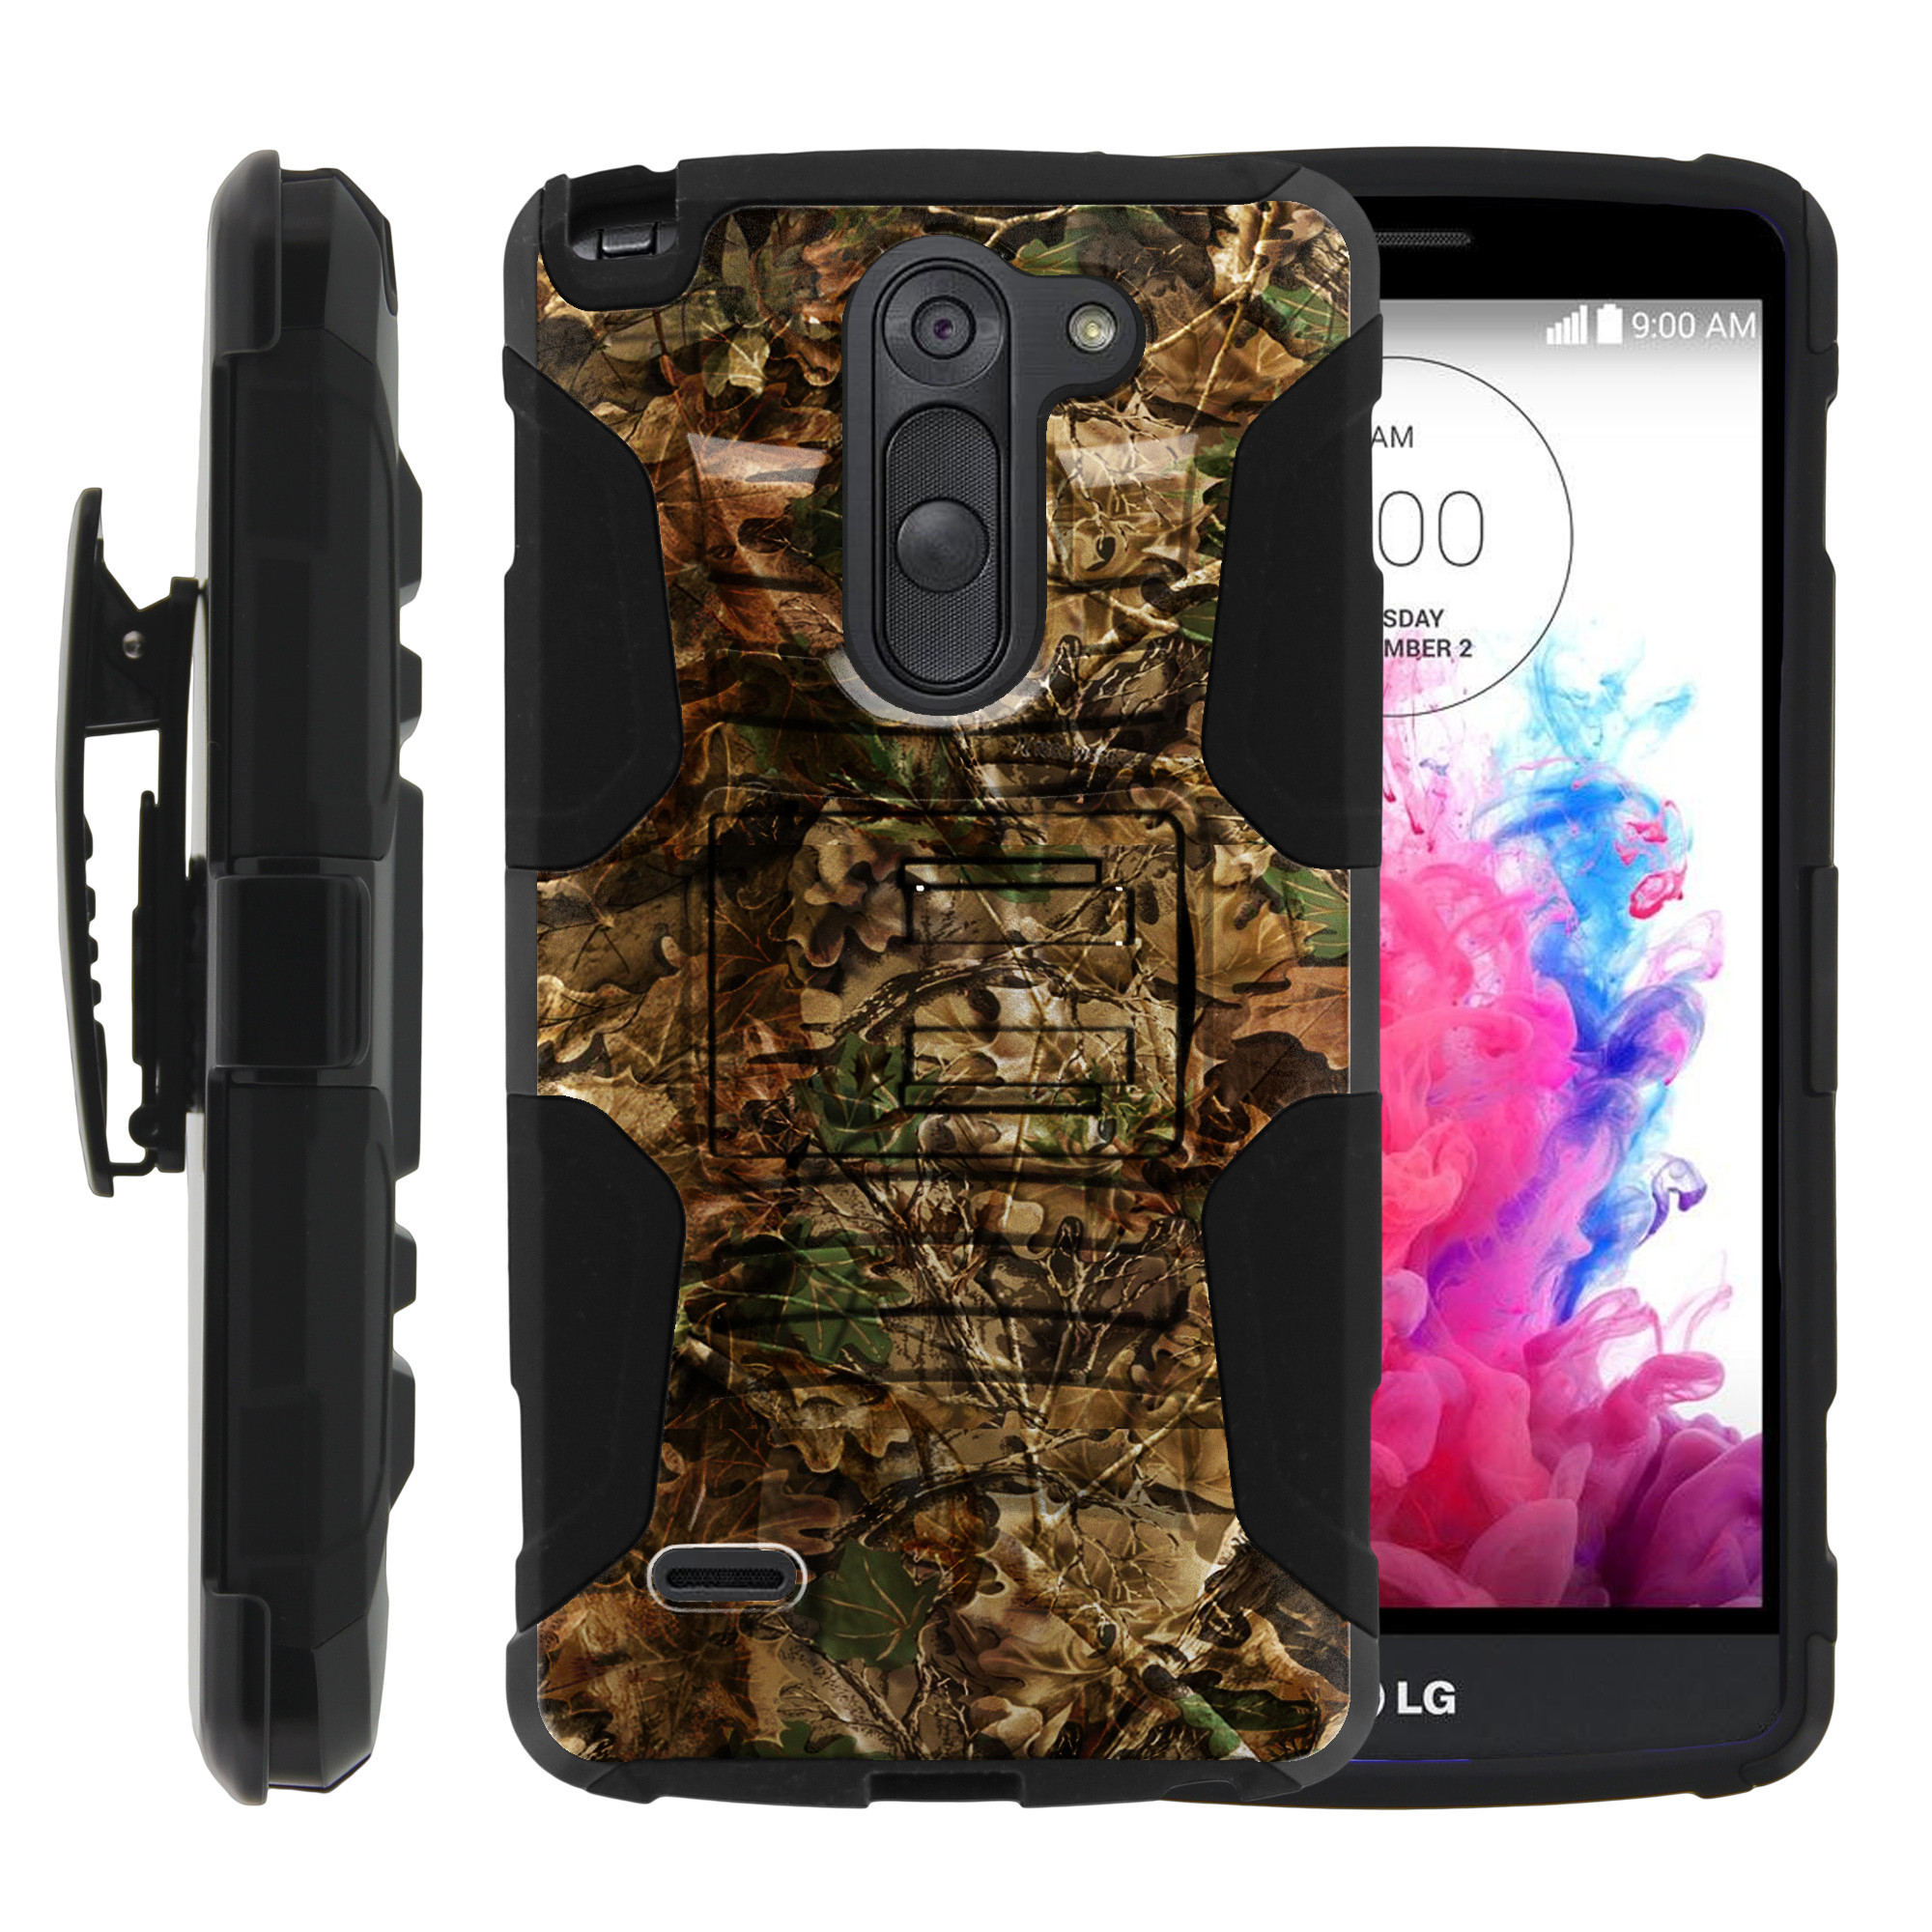 LG G3 Stylus Case | LG D690 Case | G3 Stylus Holster Case [ Clip Armor ] Rugged Case with Kickstand + Holster - Hunting Leaves Camo